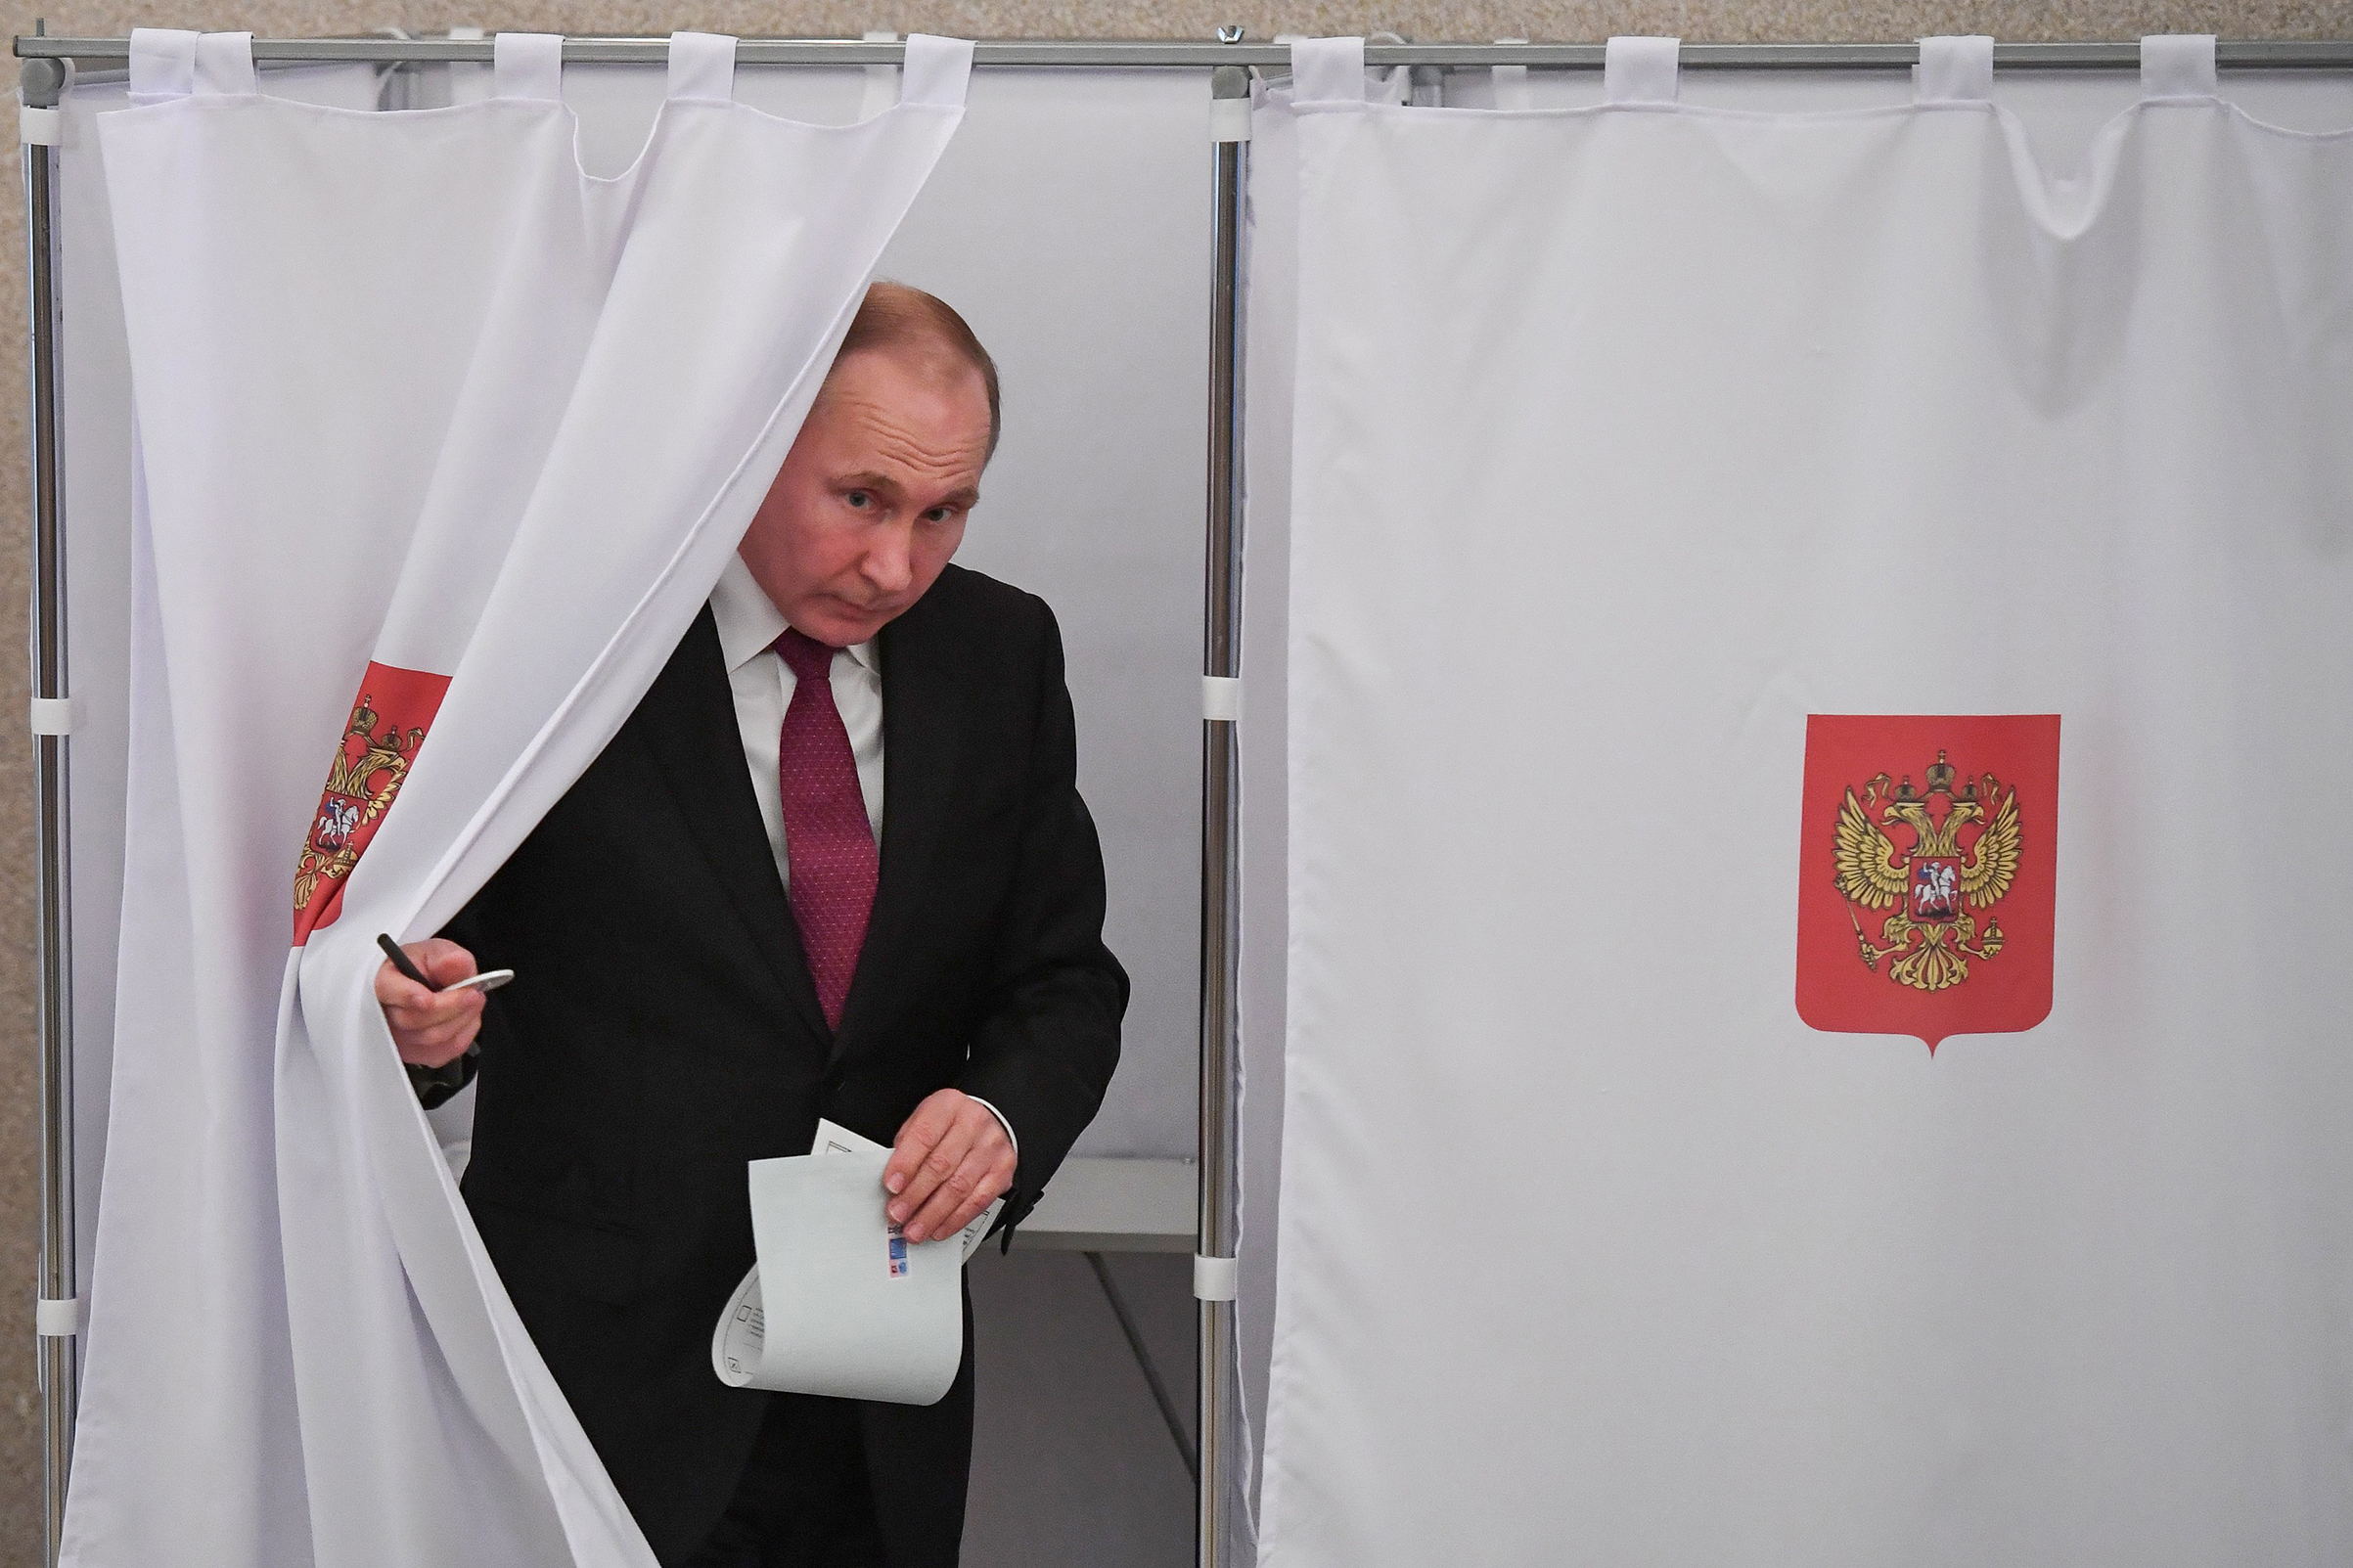 Russian President Vladimir Putin walks out of a voting booth at a polling station during the presidential election in Moscow on March 18, 2018.